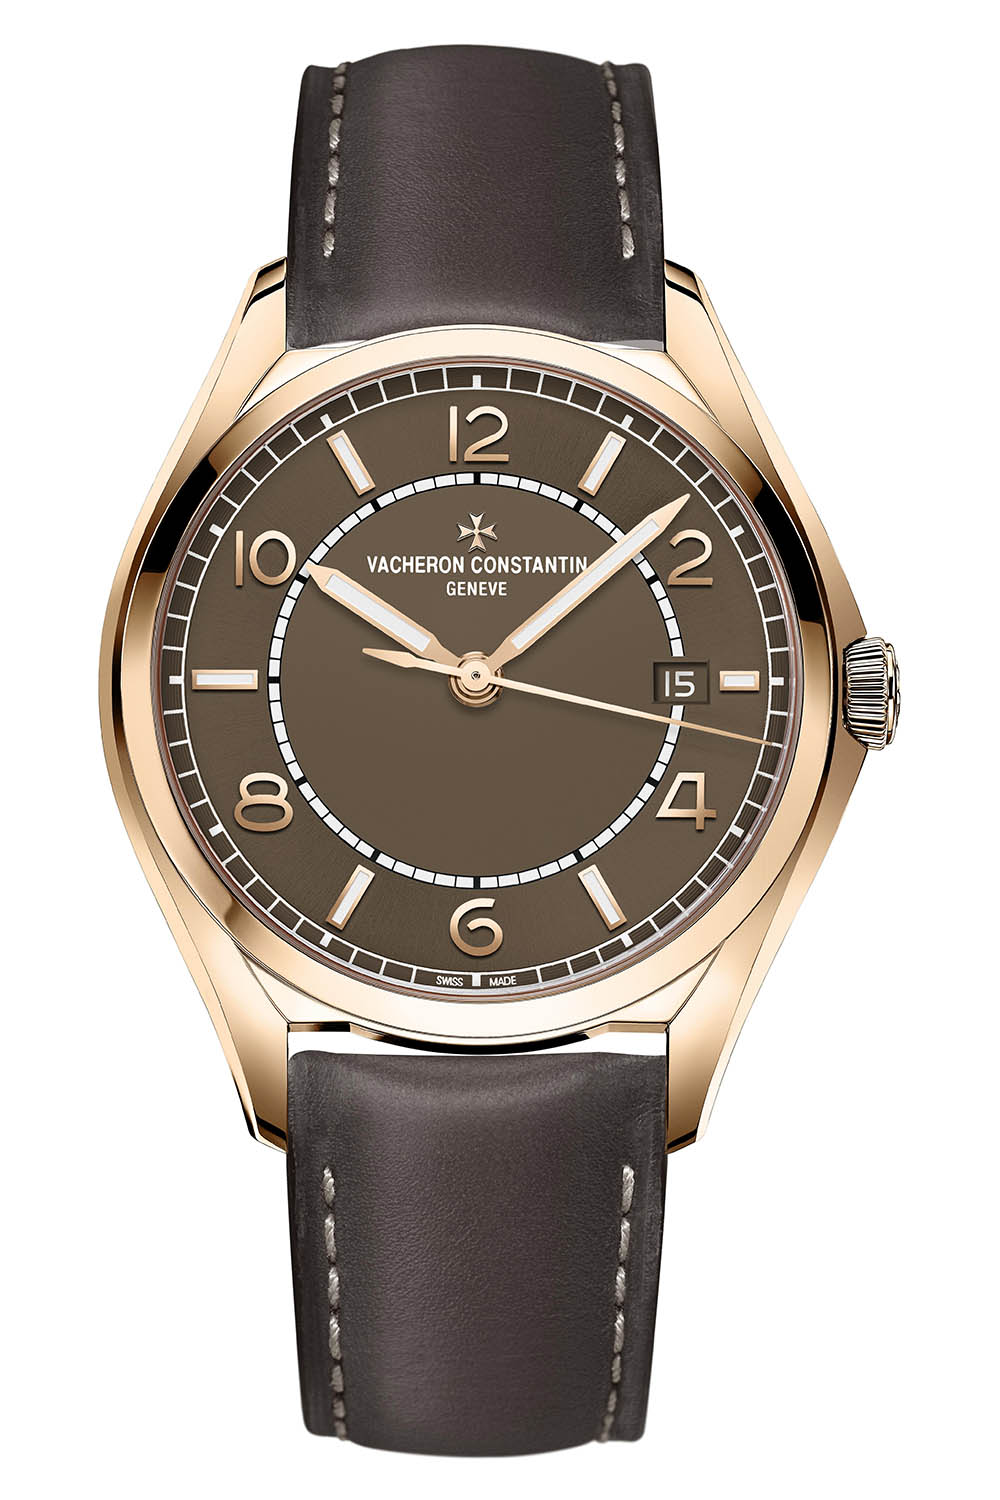 Vacheron Constantin FiftySix Sepia Brown Dial